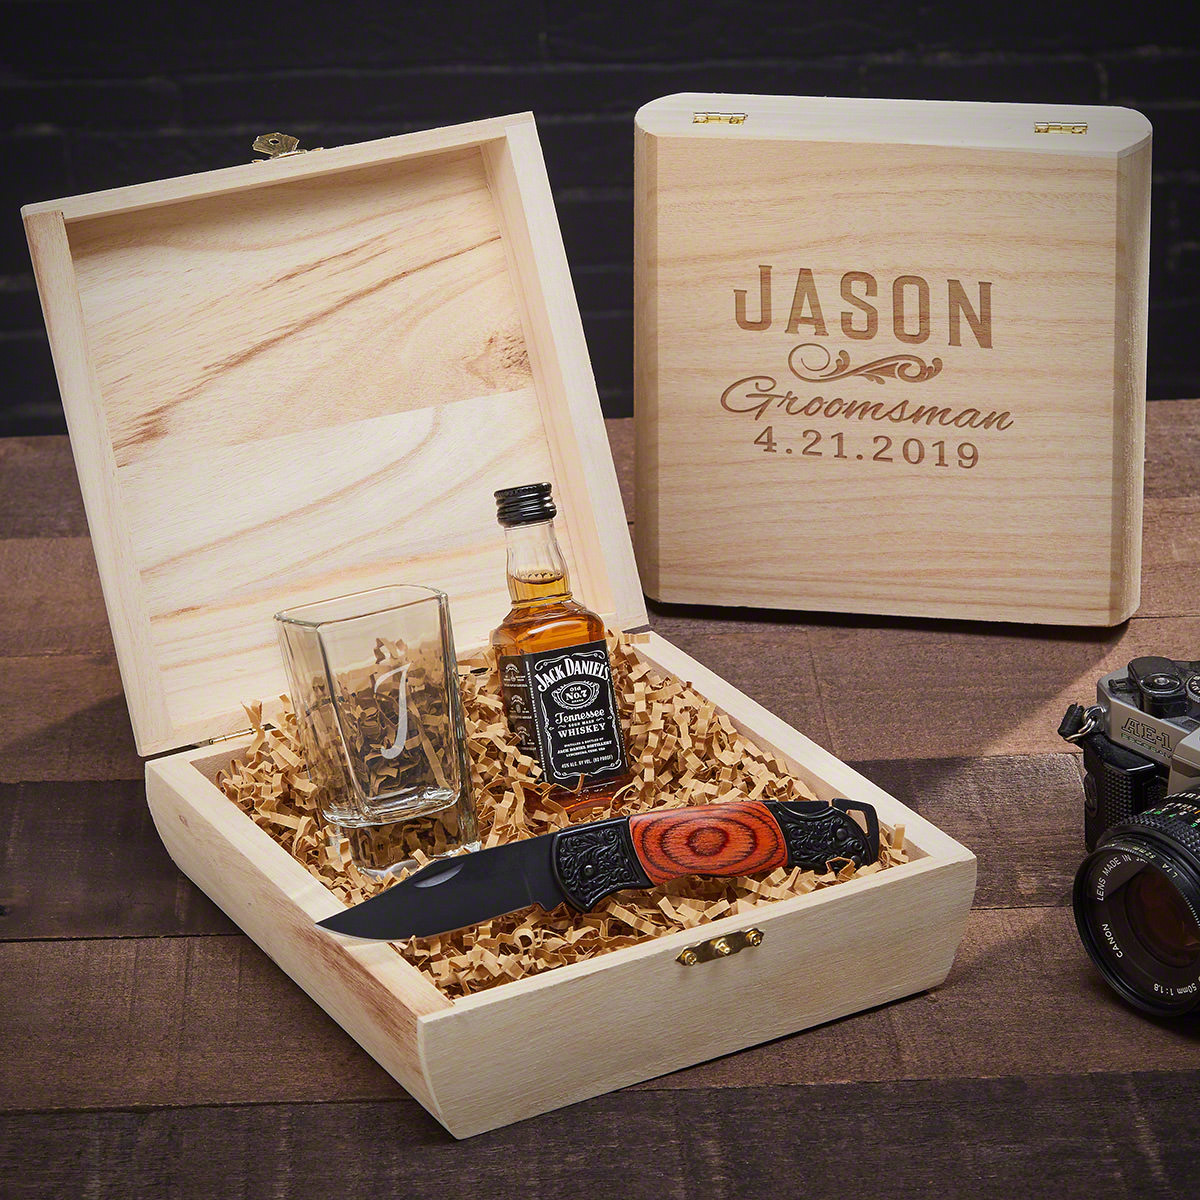 Classic-Groomsman-Double-Shot-Glass-Personalized-Gift-Box